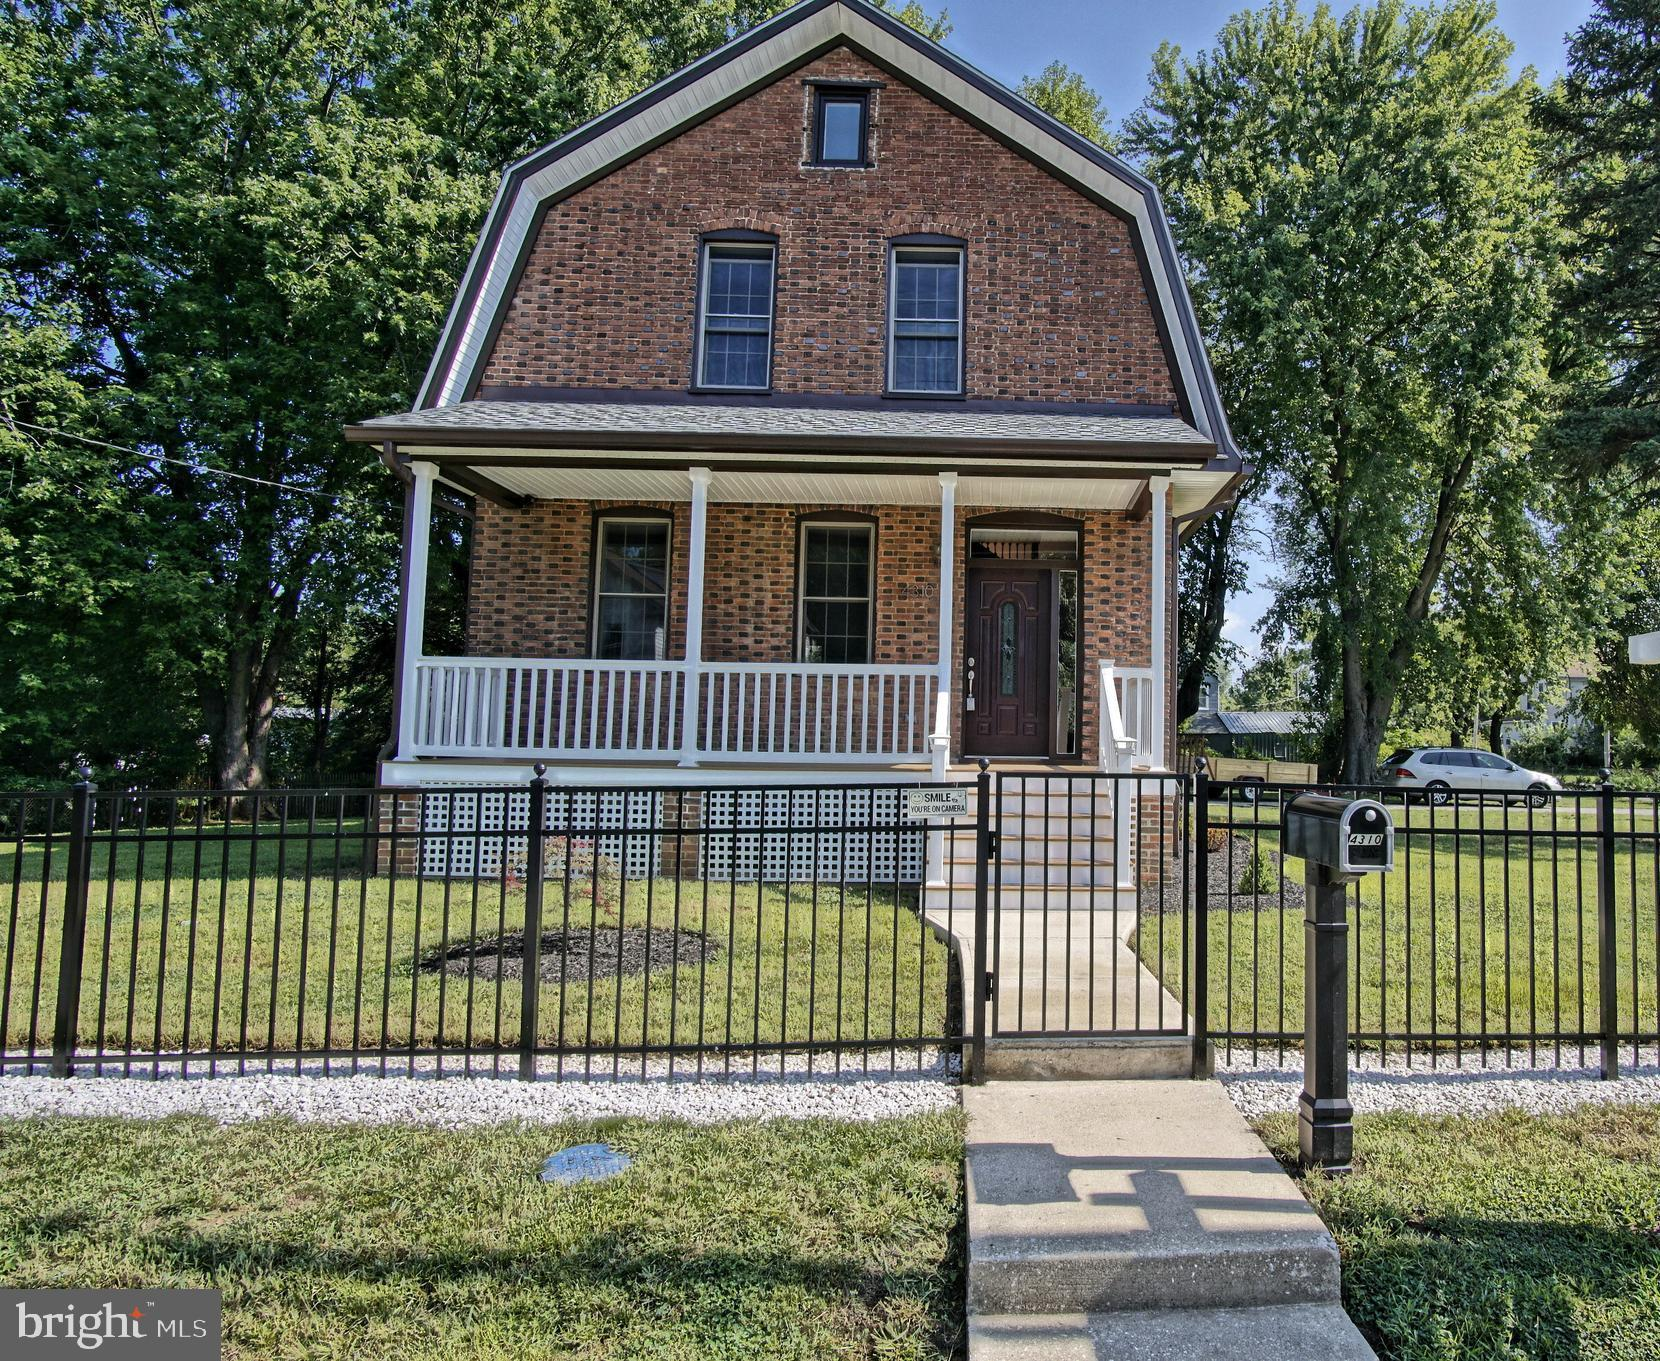 4310 MARY AVENUE, BALTIMORE, MD 21206